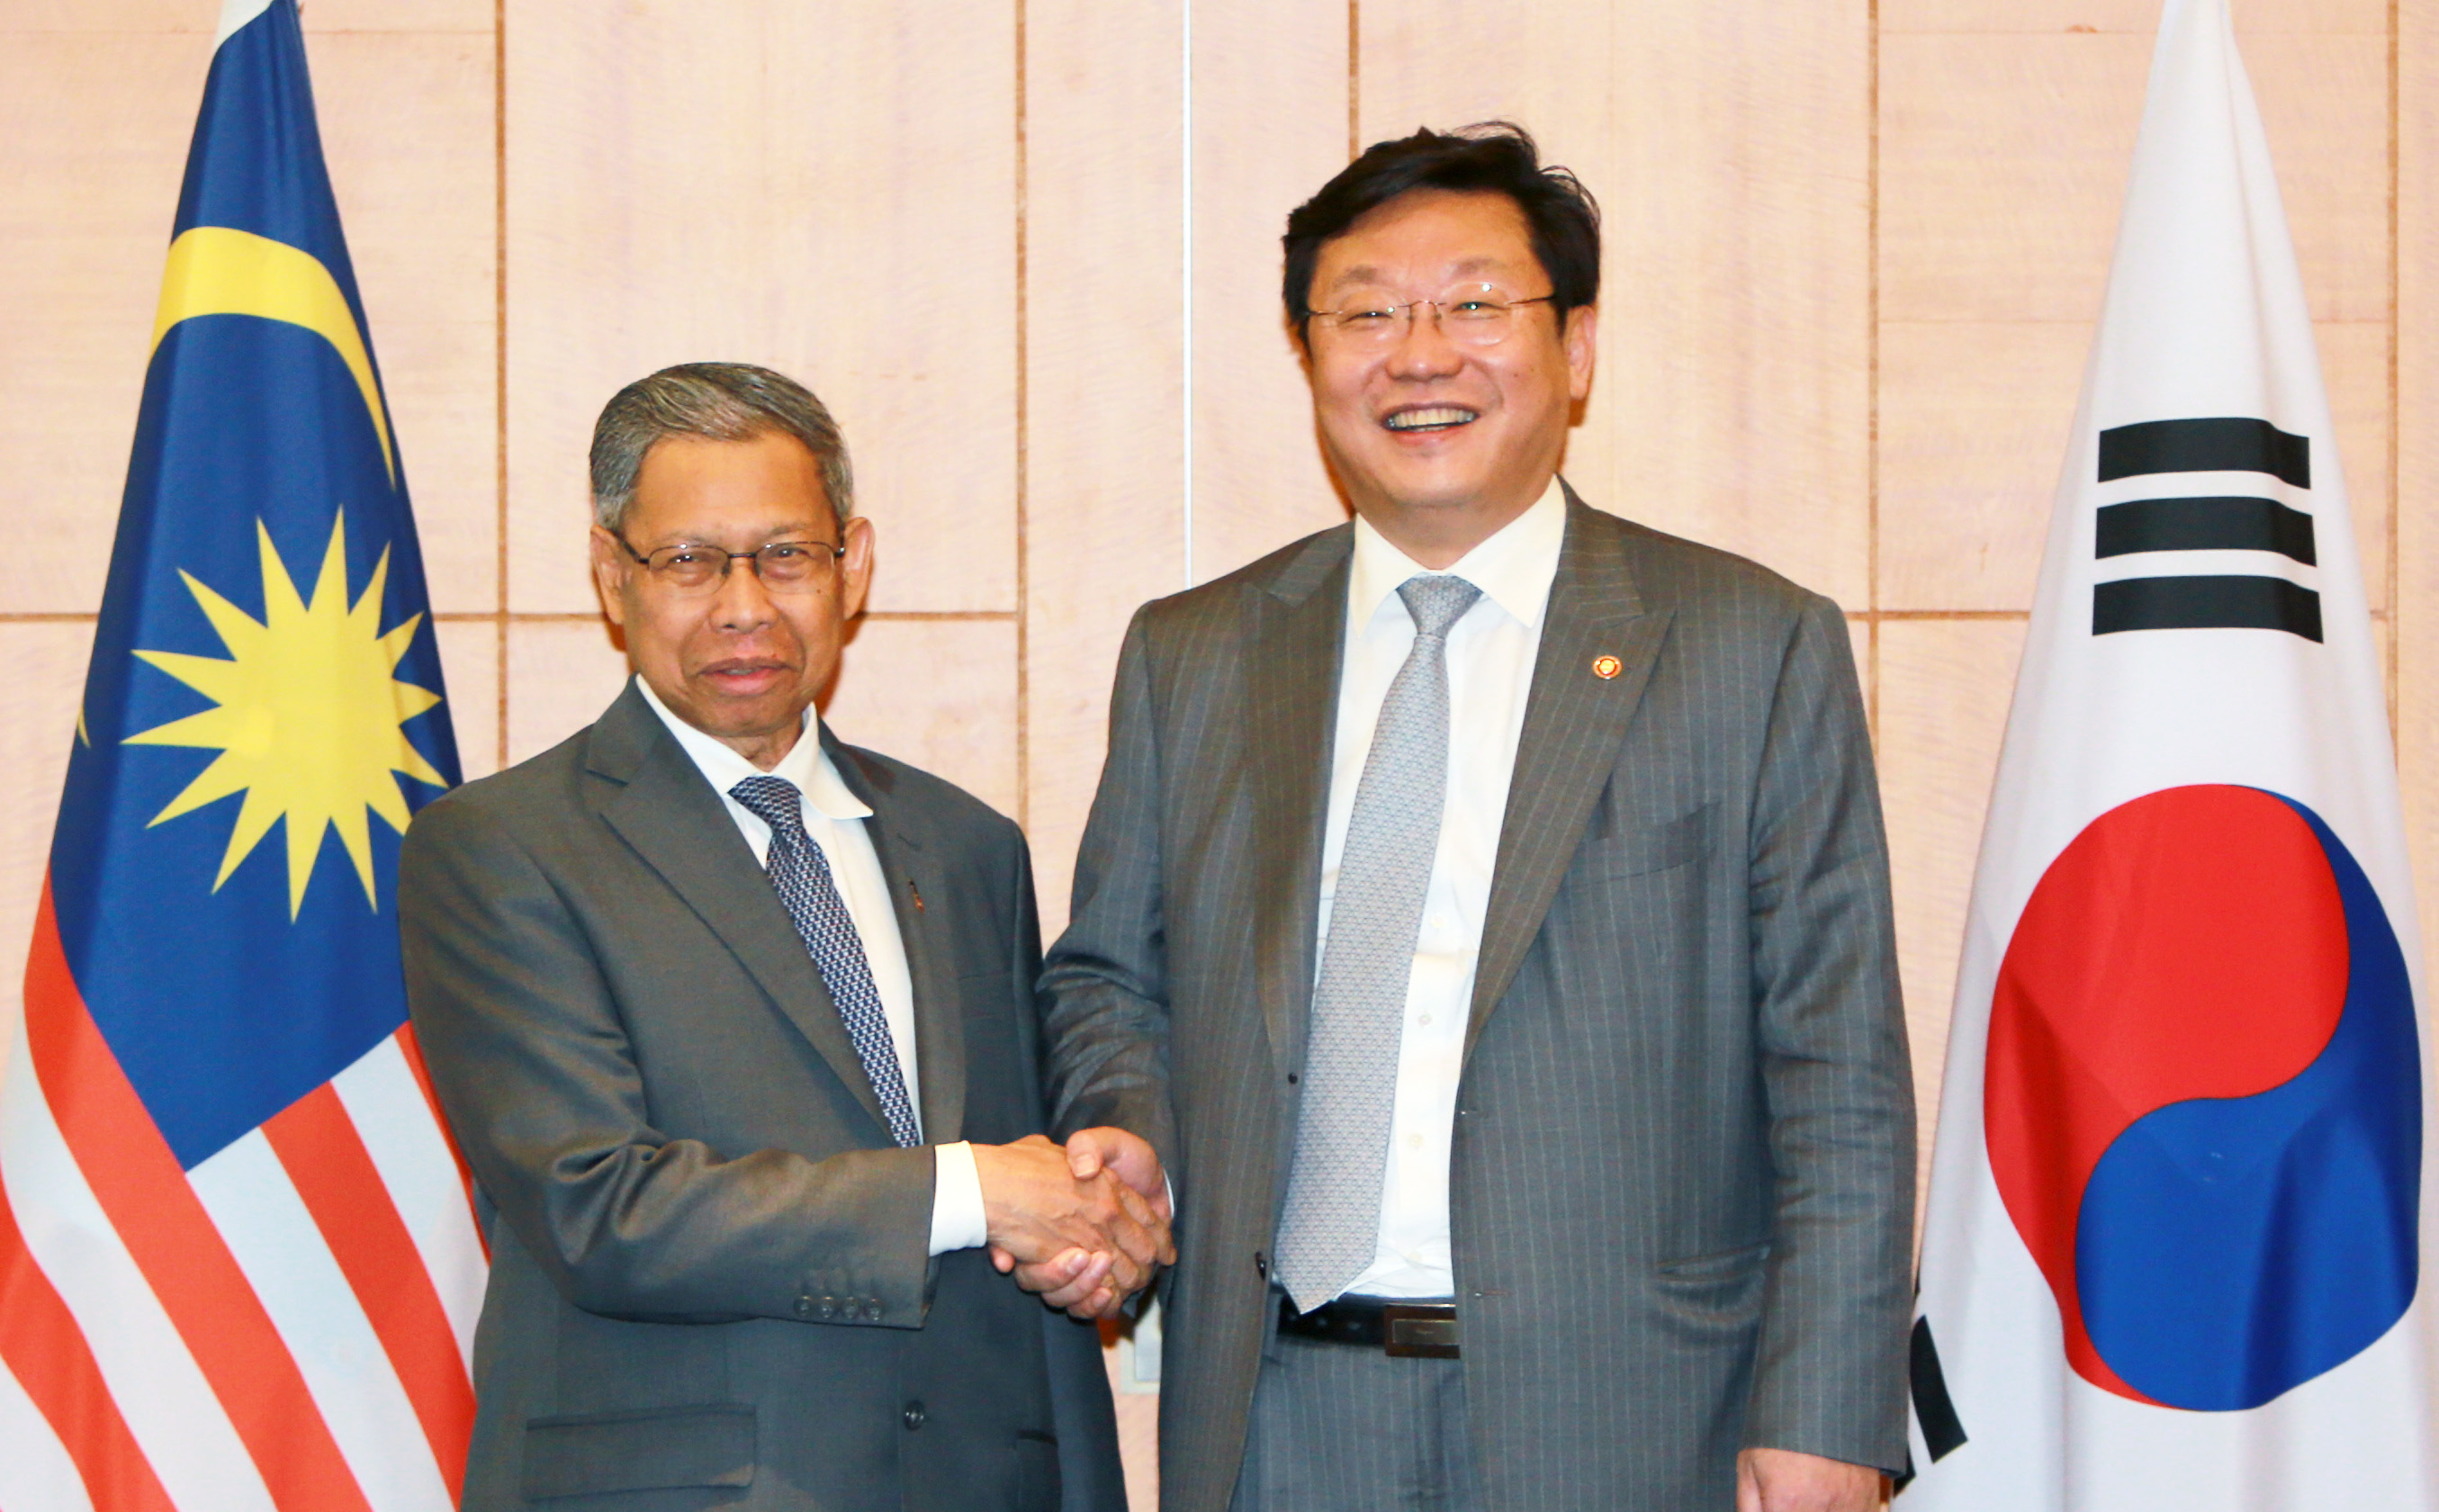 Minister Joo discusses ways to expand bilateral business cooperation with Malaysia's minister